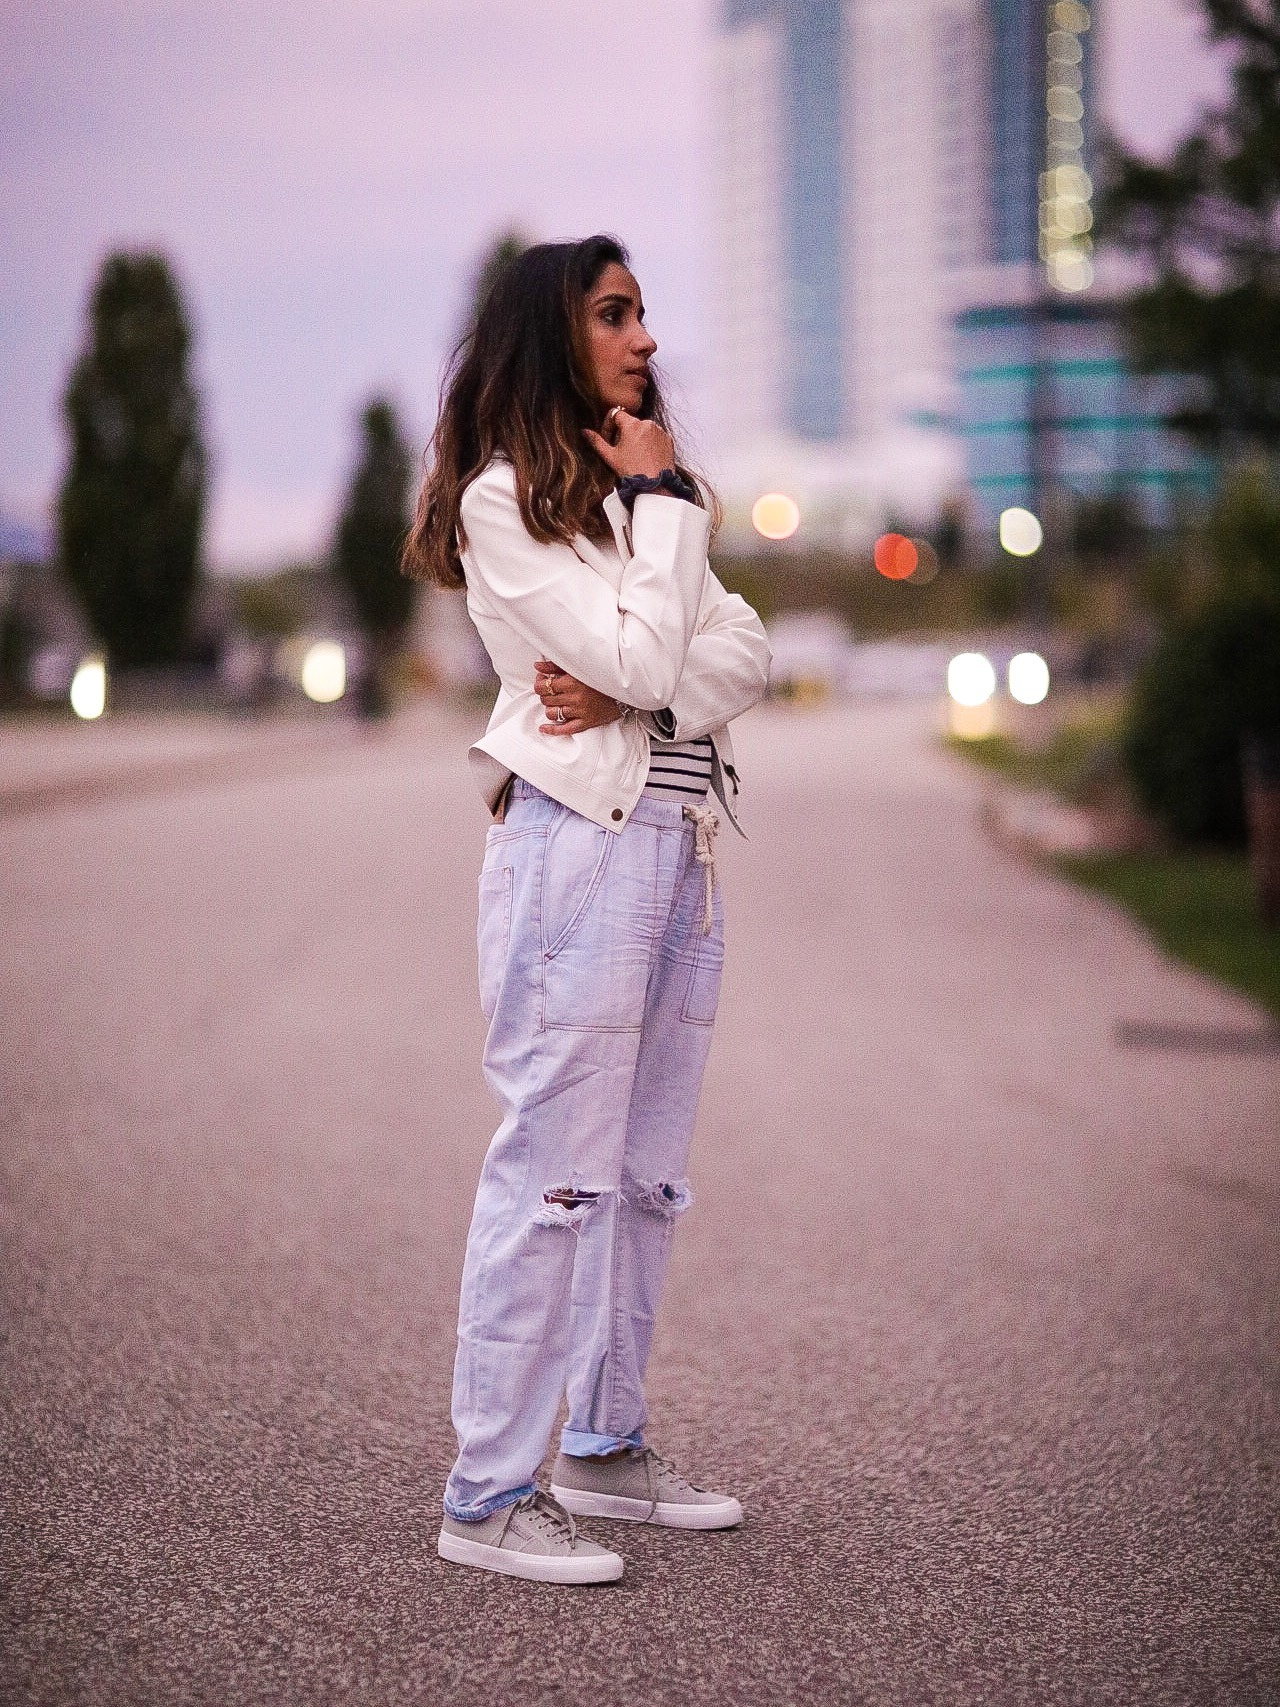 Distressed Jeans for Days Lulus LIGHT WASH DRAWSTRING Faiza Inam Casual Look Summer Fall Fashion Style Toronto Blogger 5